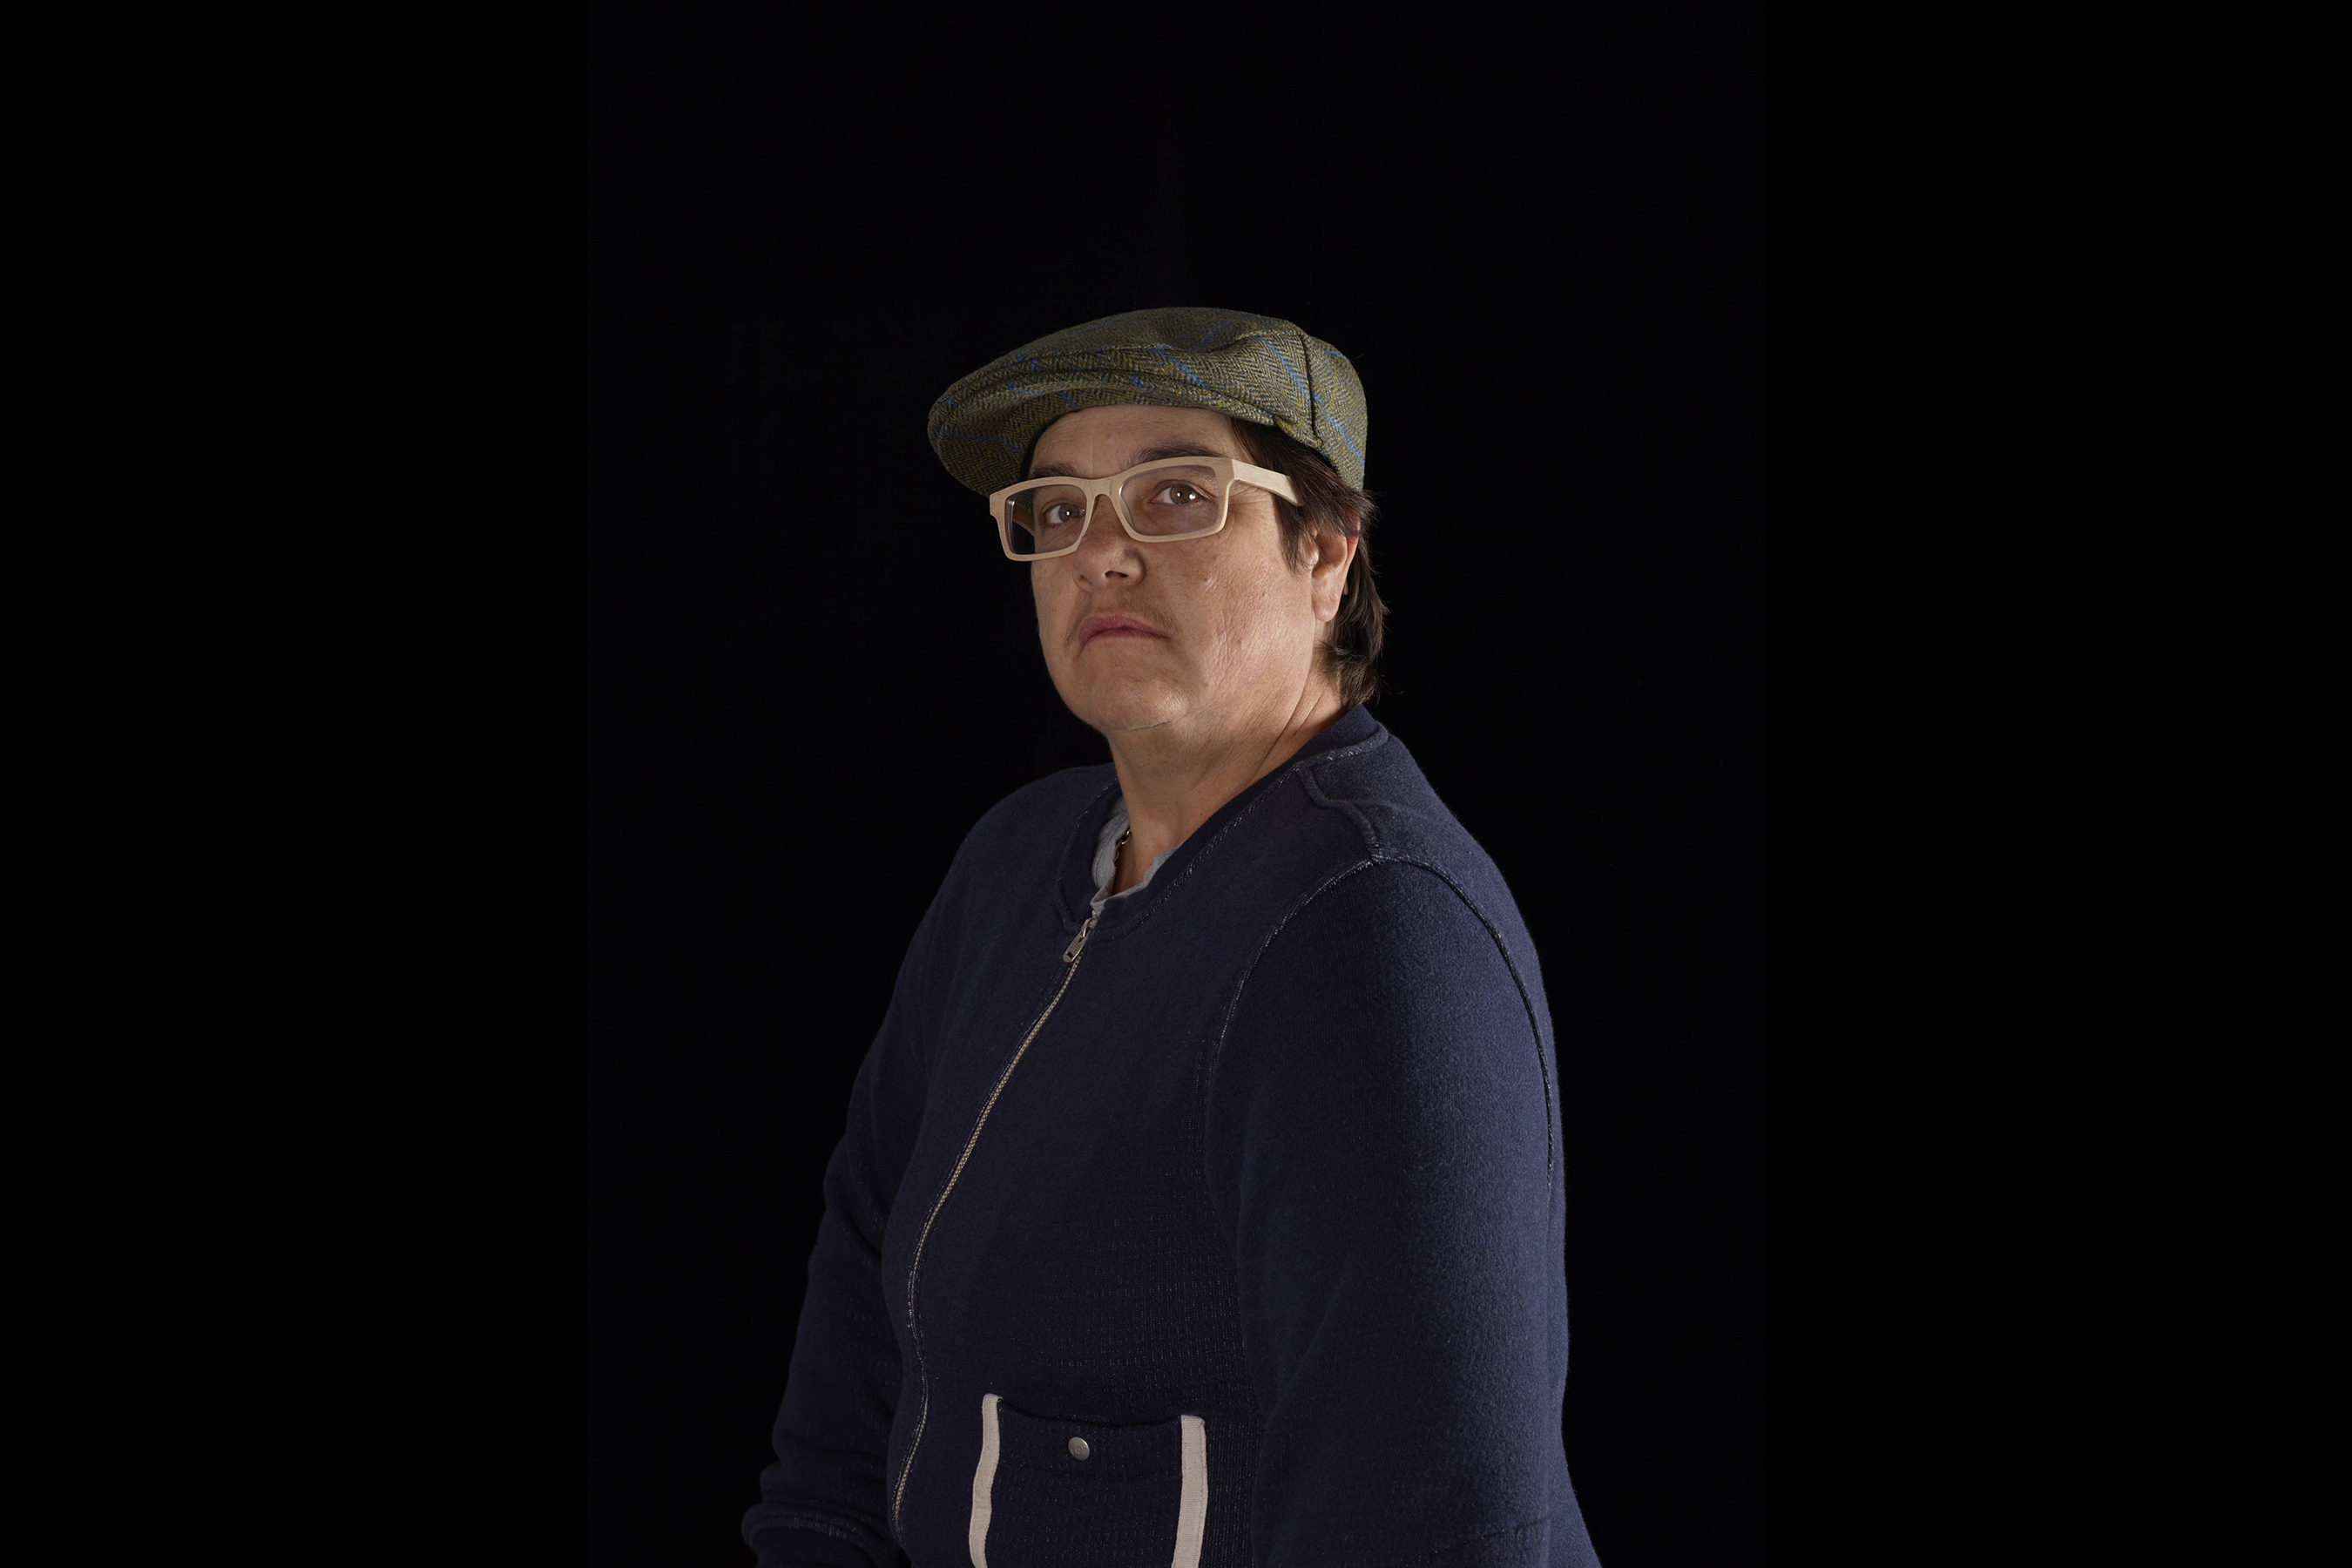 A portrait of the photographer Catherine Opie, showing a three-quarter view of her upper body on a black background. Her eyes look into the lens. Opie has short brown hair, and is wearing a dark blue sweater with a zipper, a wool cap, and beige glasses.